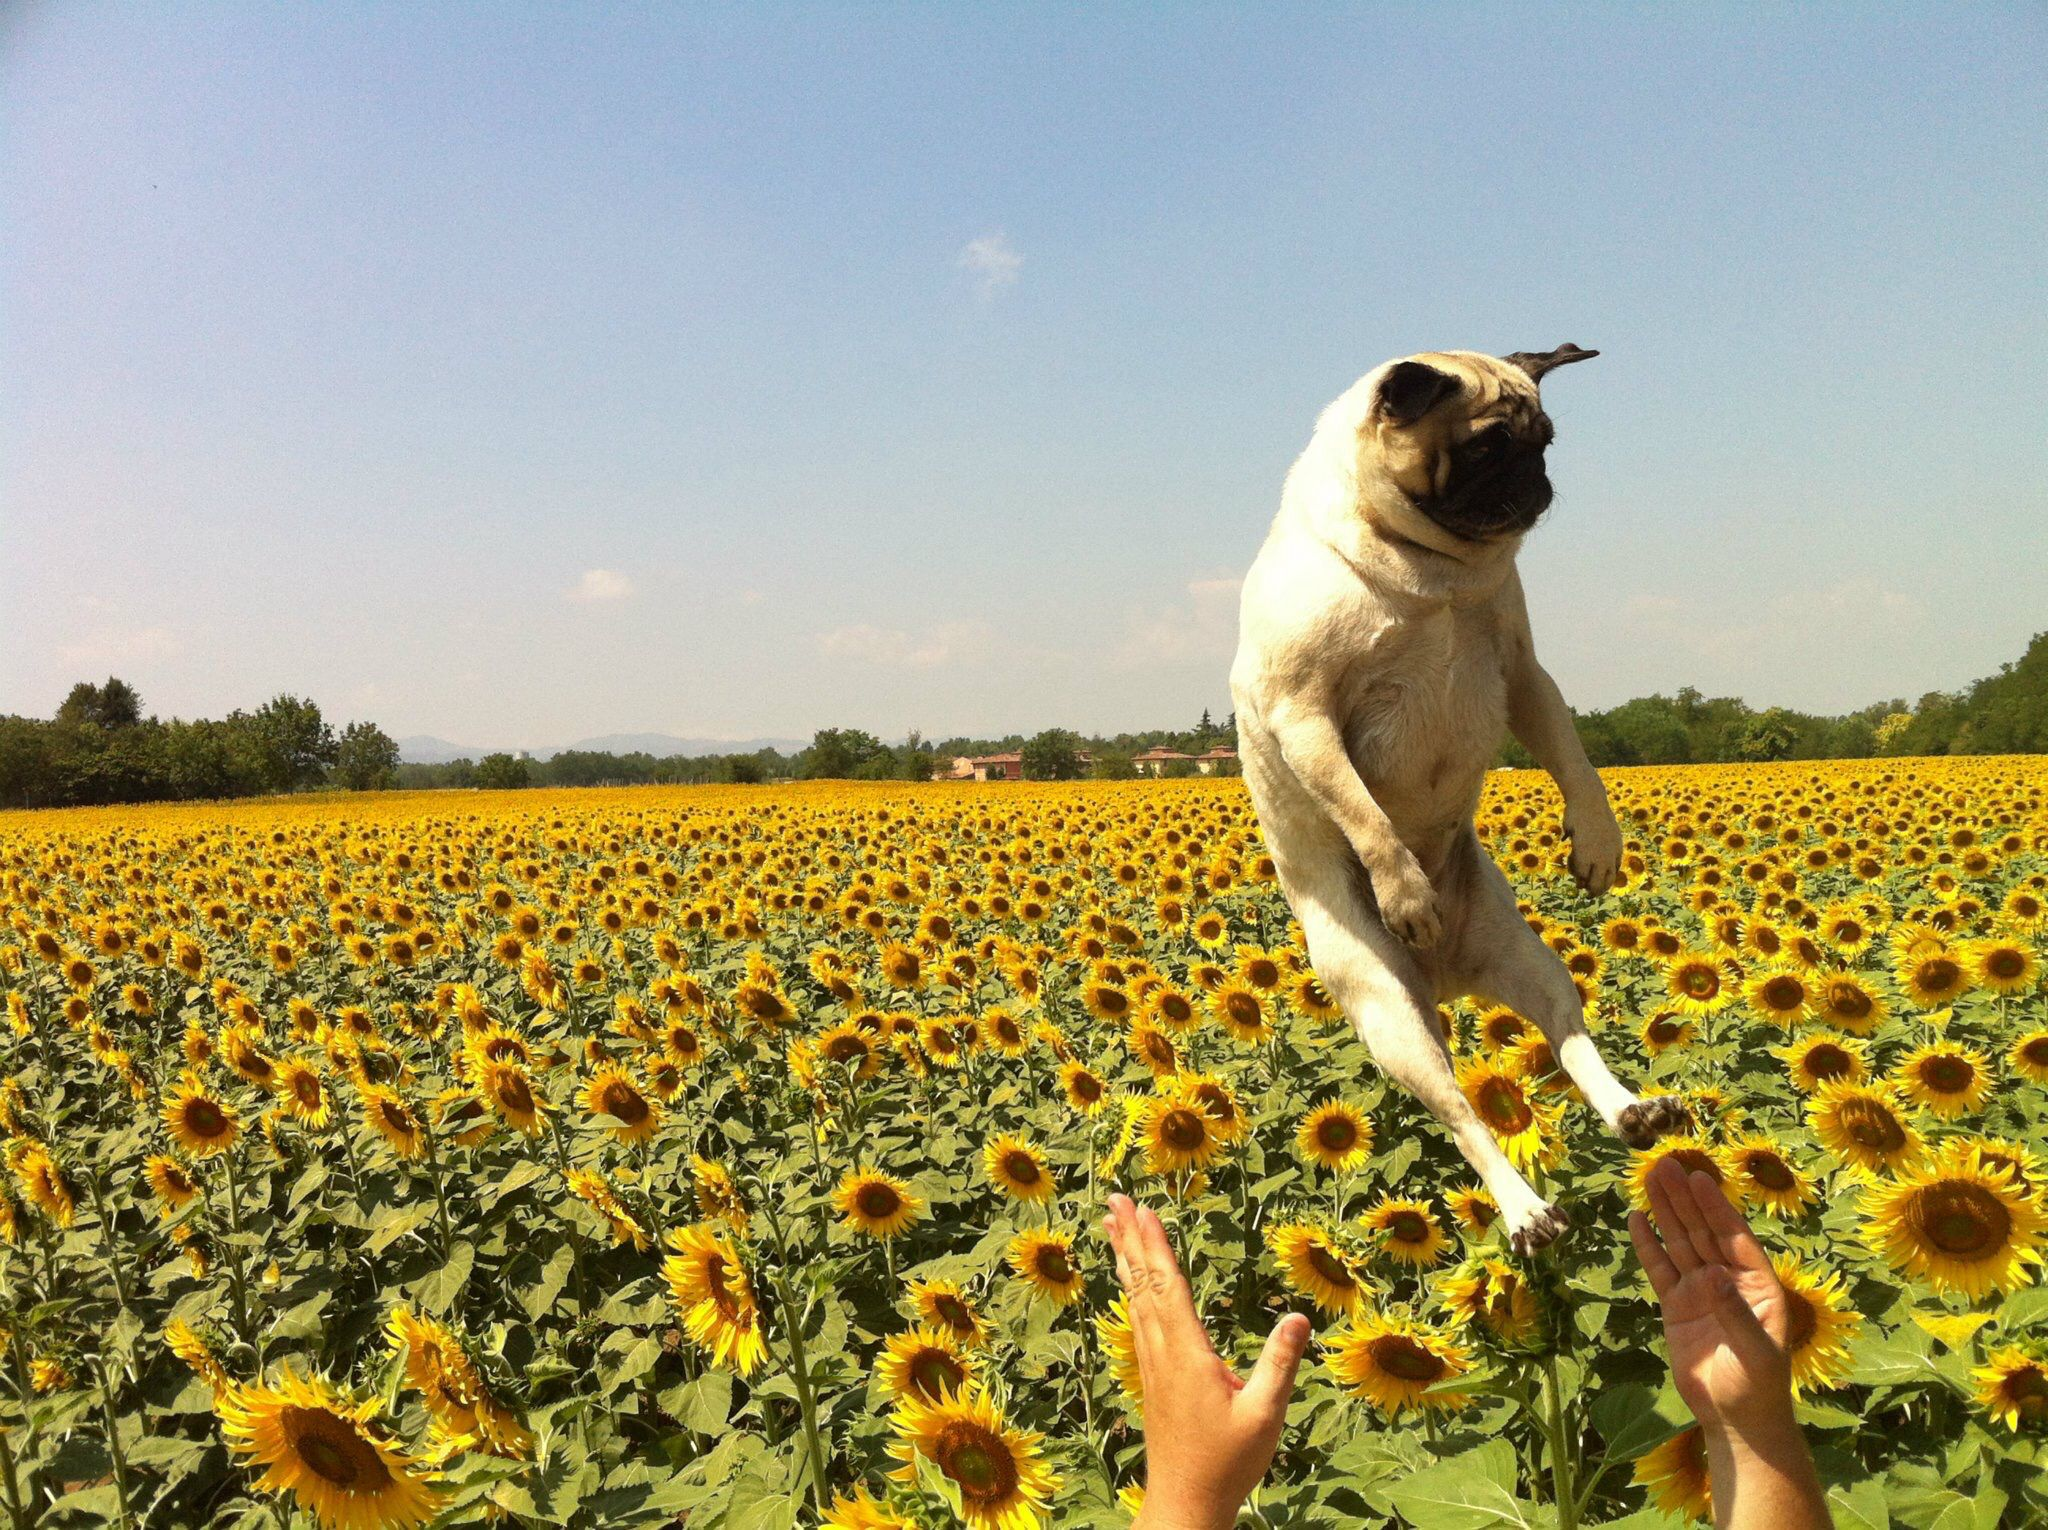 Celebrating Pugs and summer in Tuscany with Isabelle Pug | About